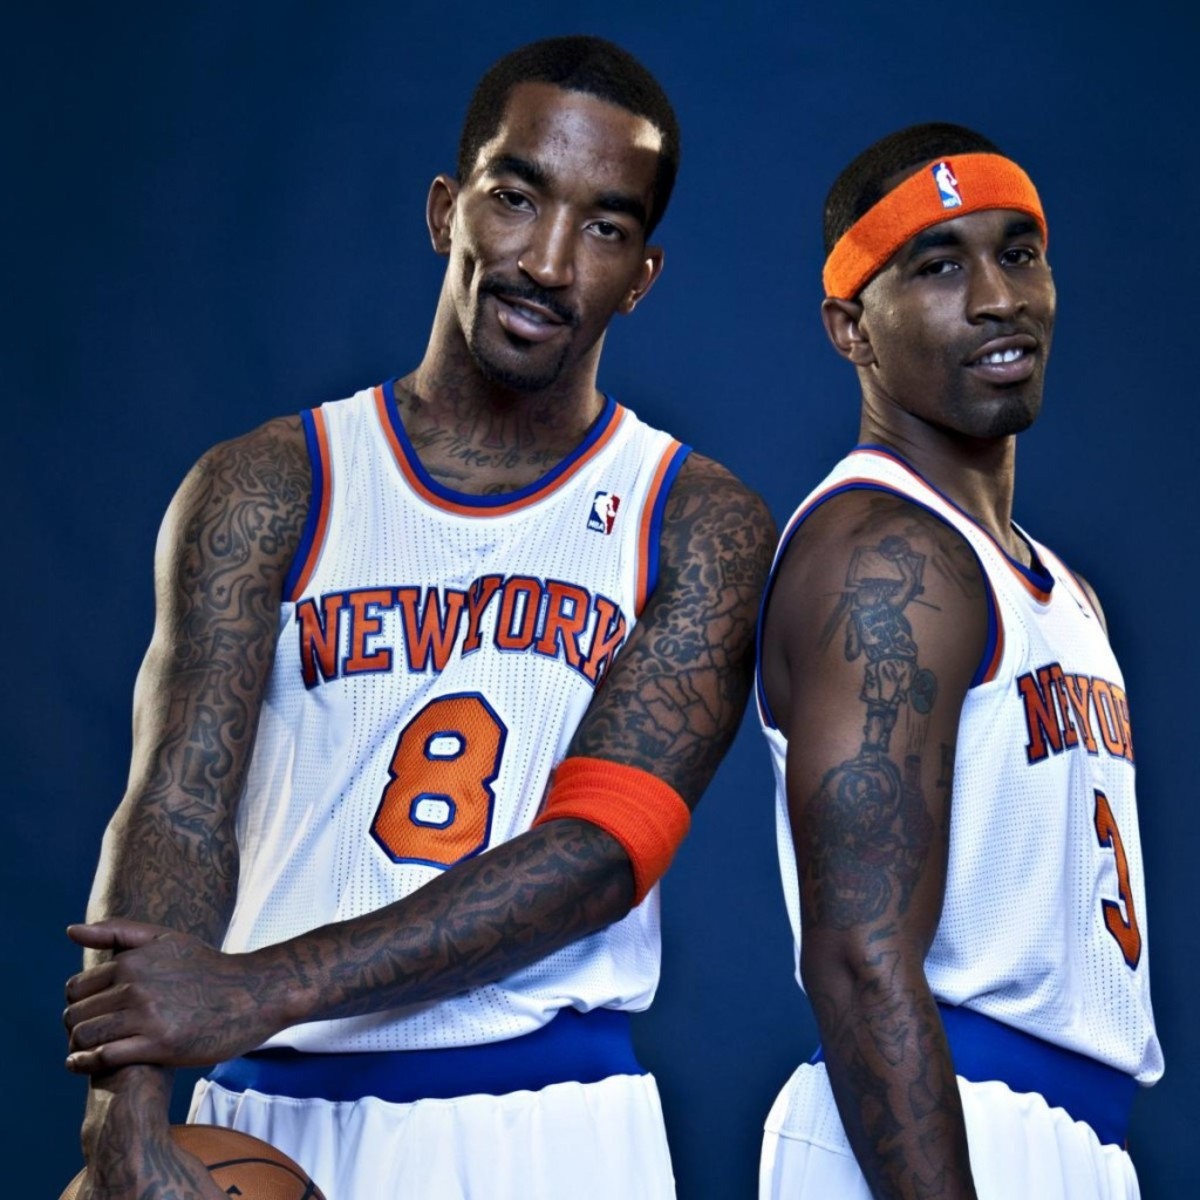 hi-res-153216483-smith-and-chris-smith-of-the-new-york-knicks-poses-for_crop_exact